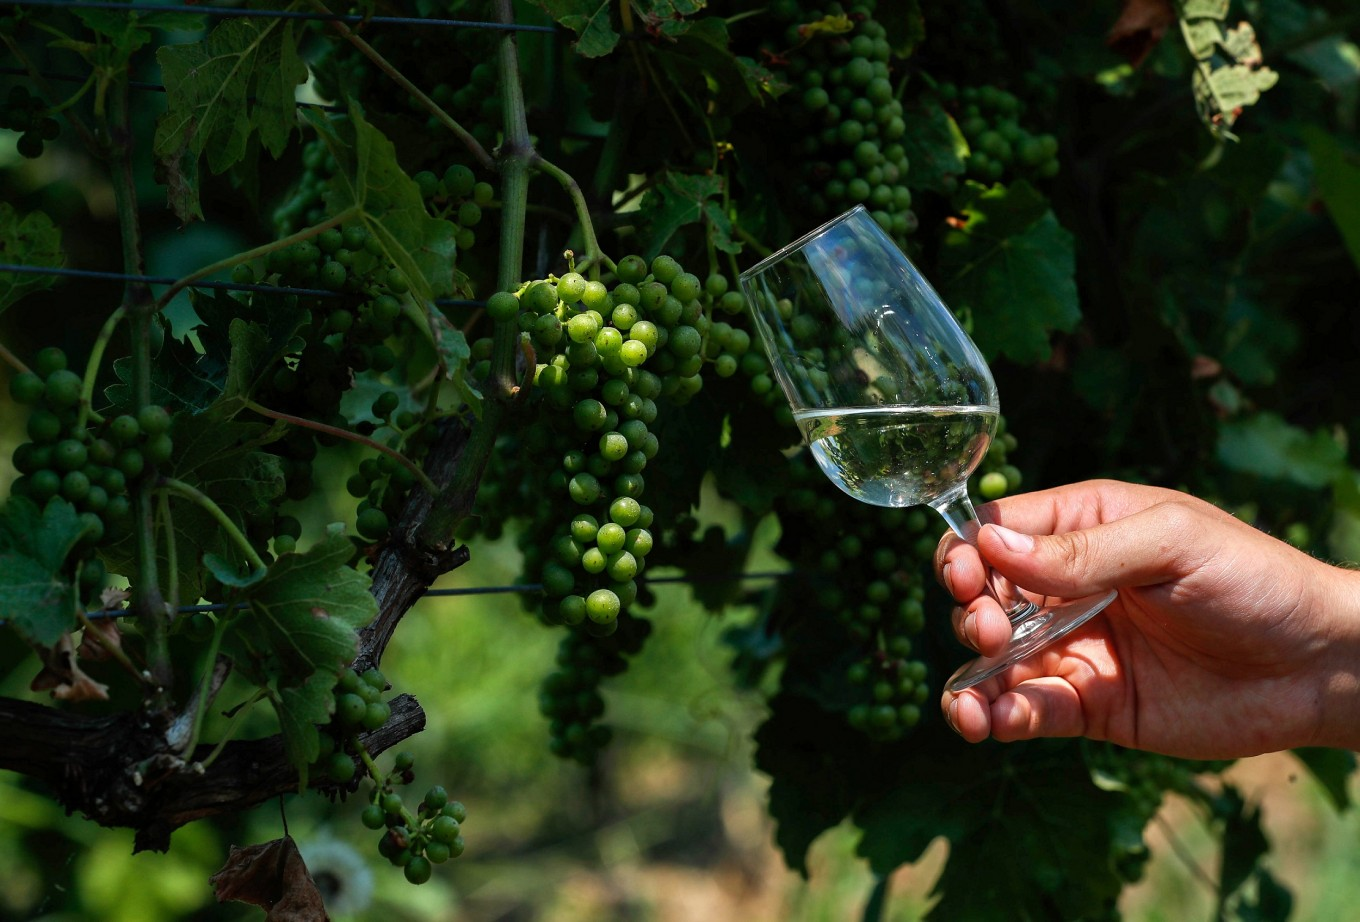 Climate change boosts wine production in beer-loving Belgium